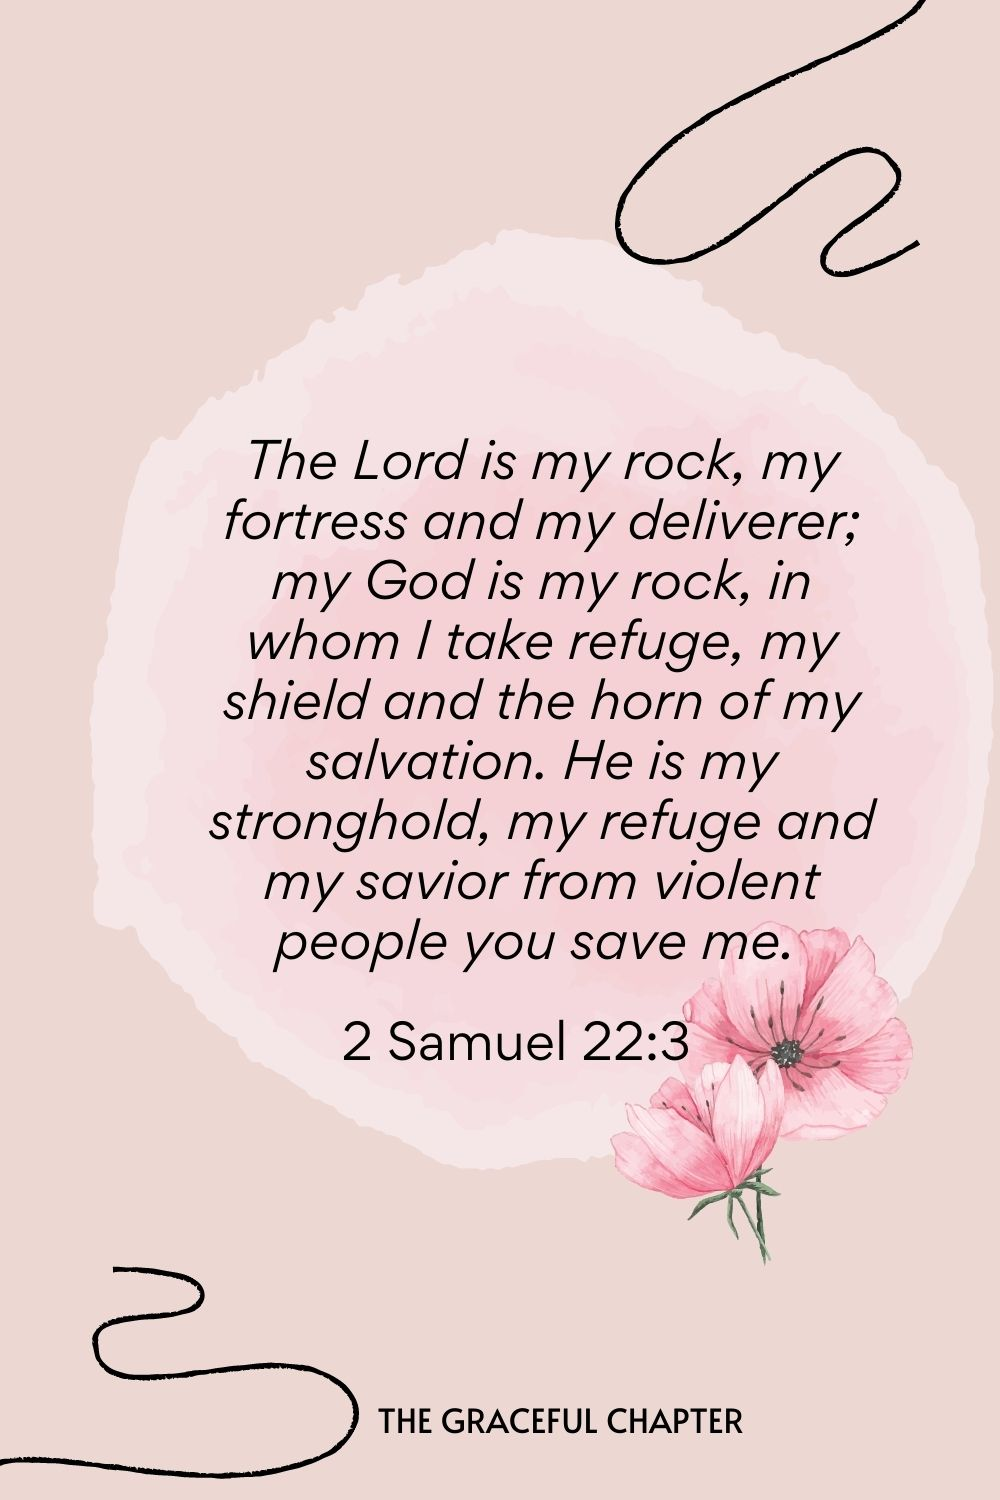 The Lord is my rock, my fortress, and my deliverer; my God is my rock, in whom I take refuge, my shield and the horn of my salvation. He is my stronghold, my refuge, and my savior from violent people you save me.  2 Samuel 22:3